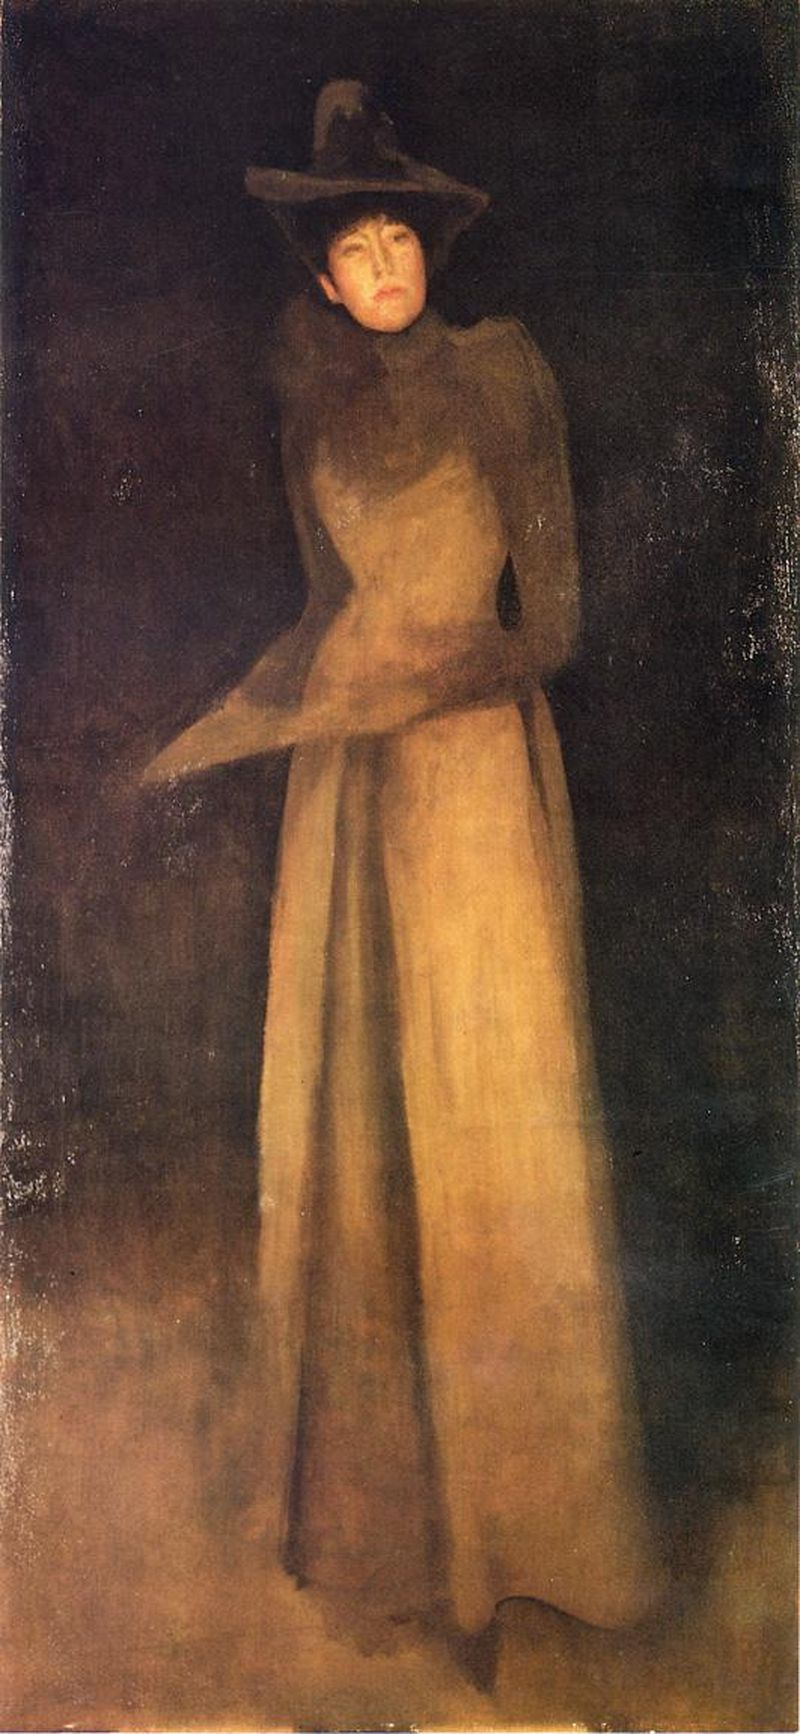 James Abbot McNeill Whistler. Harmony in brown: the Felt hat